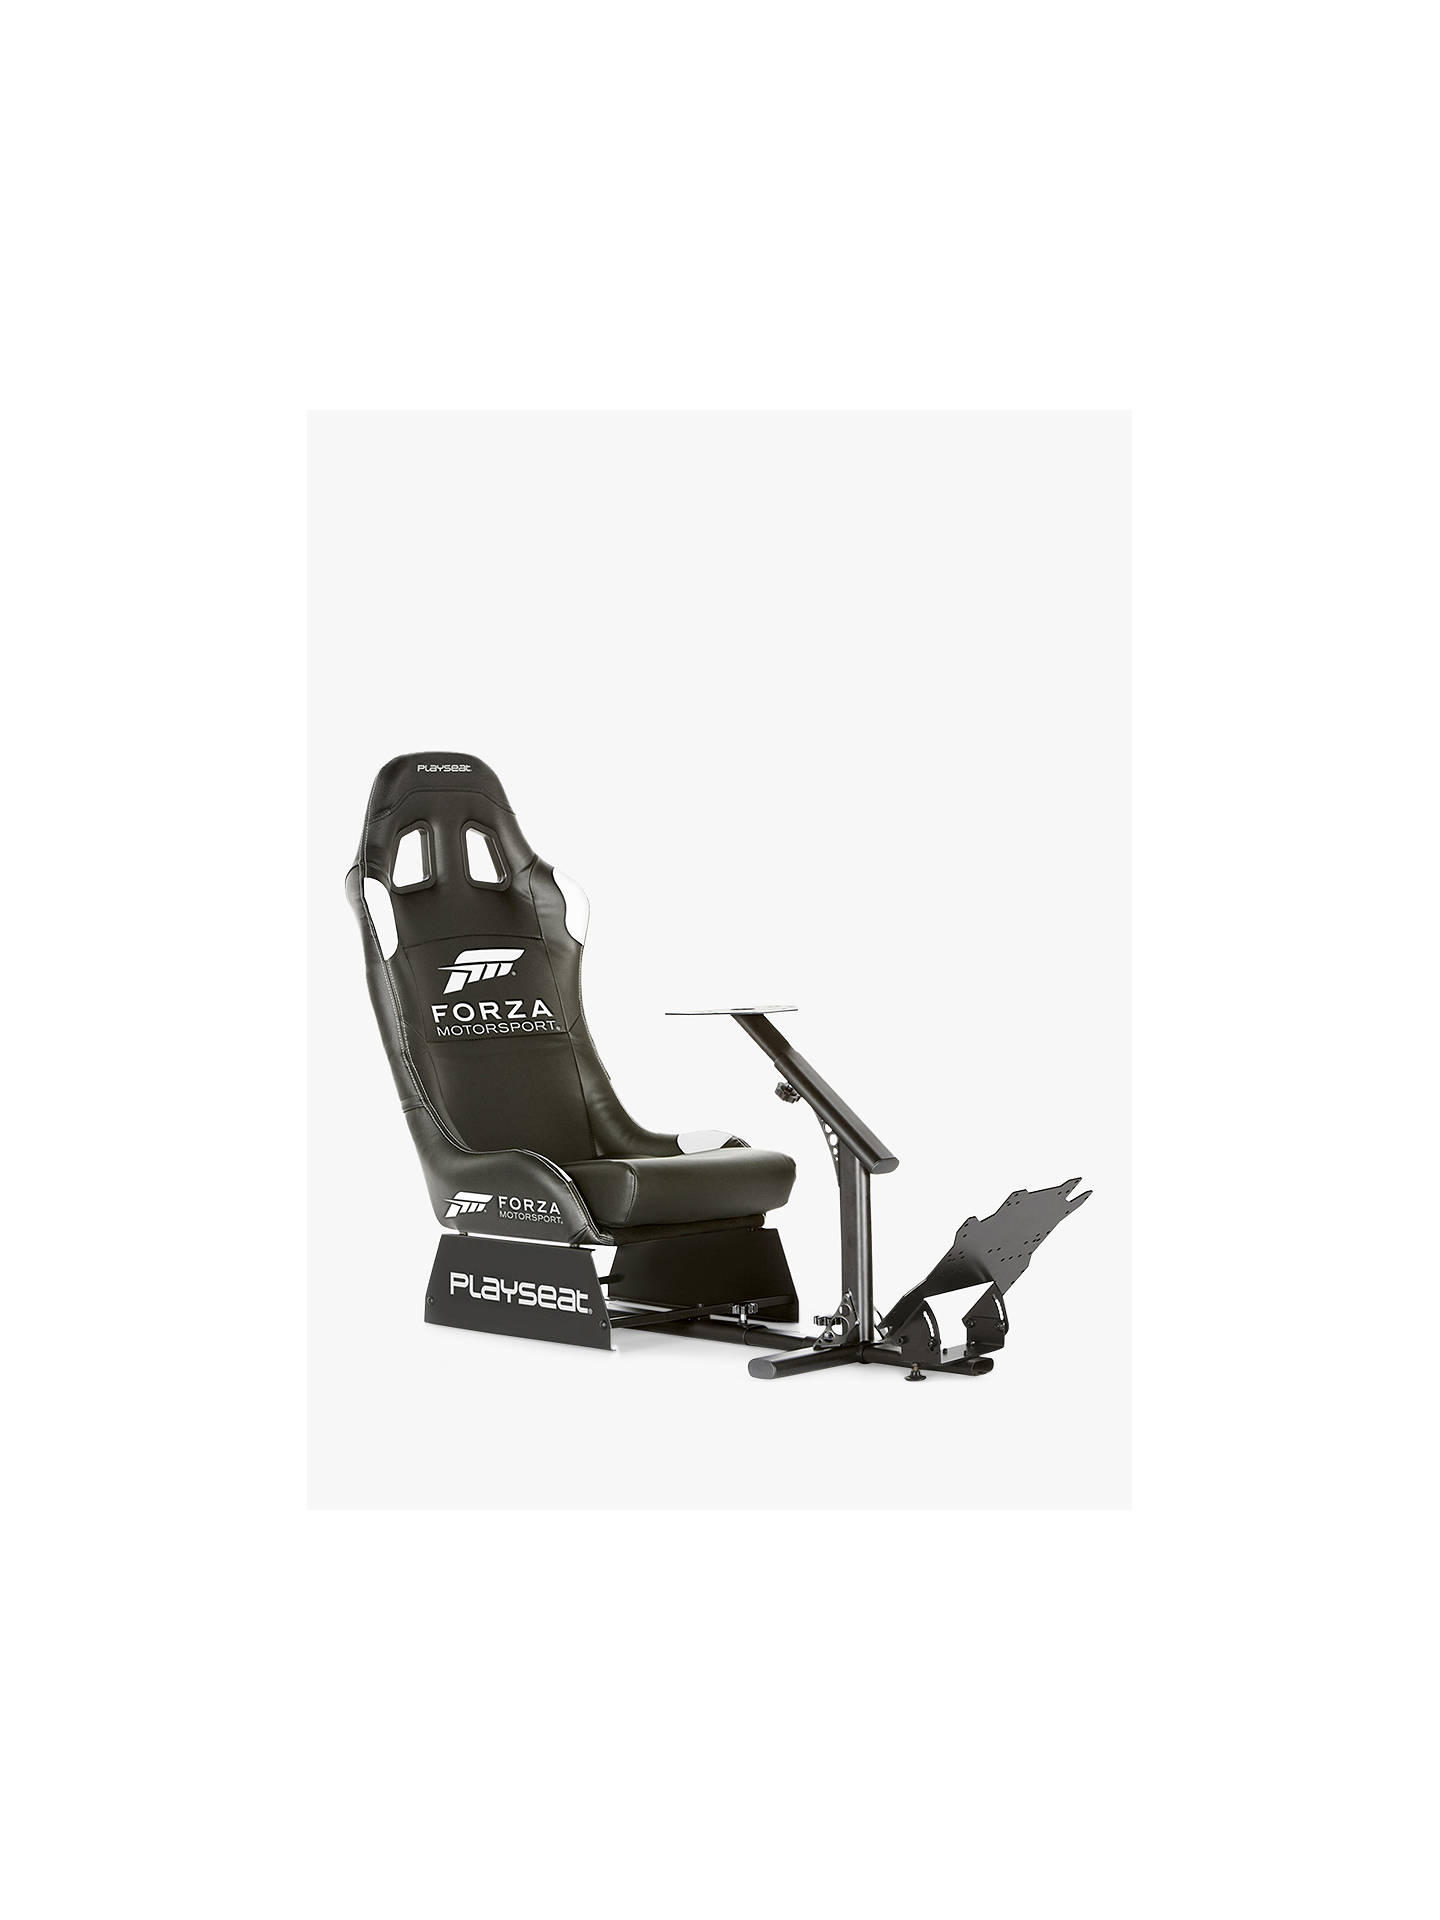 Pleasing Playseat Forza Motorsport Gaming Chair Black Ocoug Best Dining Table And Chair Ideas Images Ocougorg